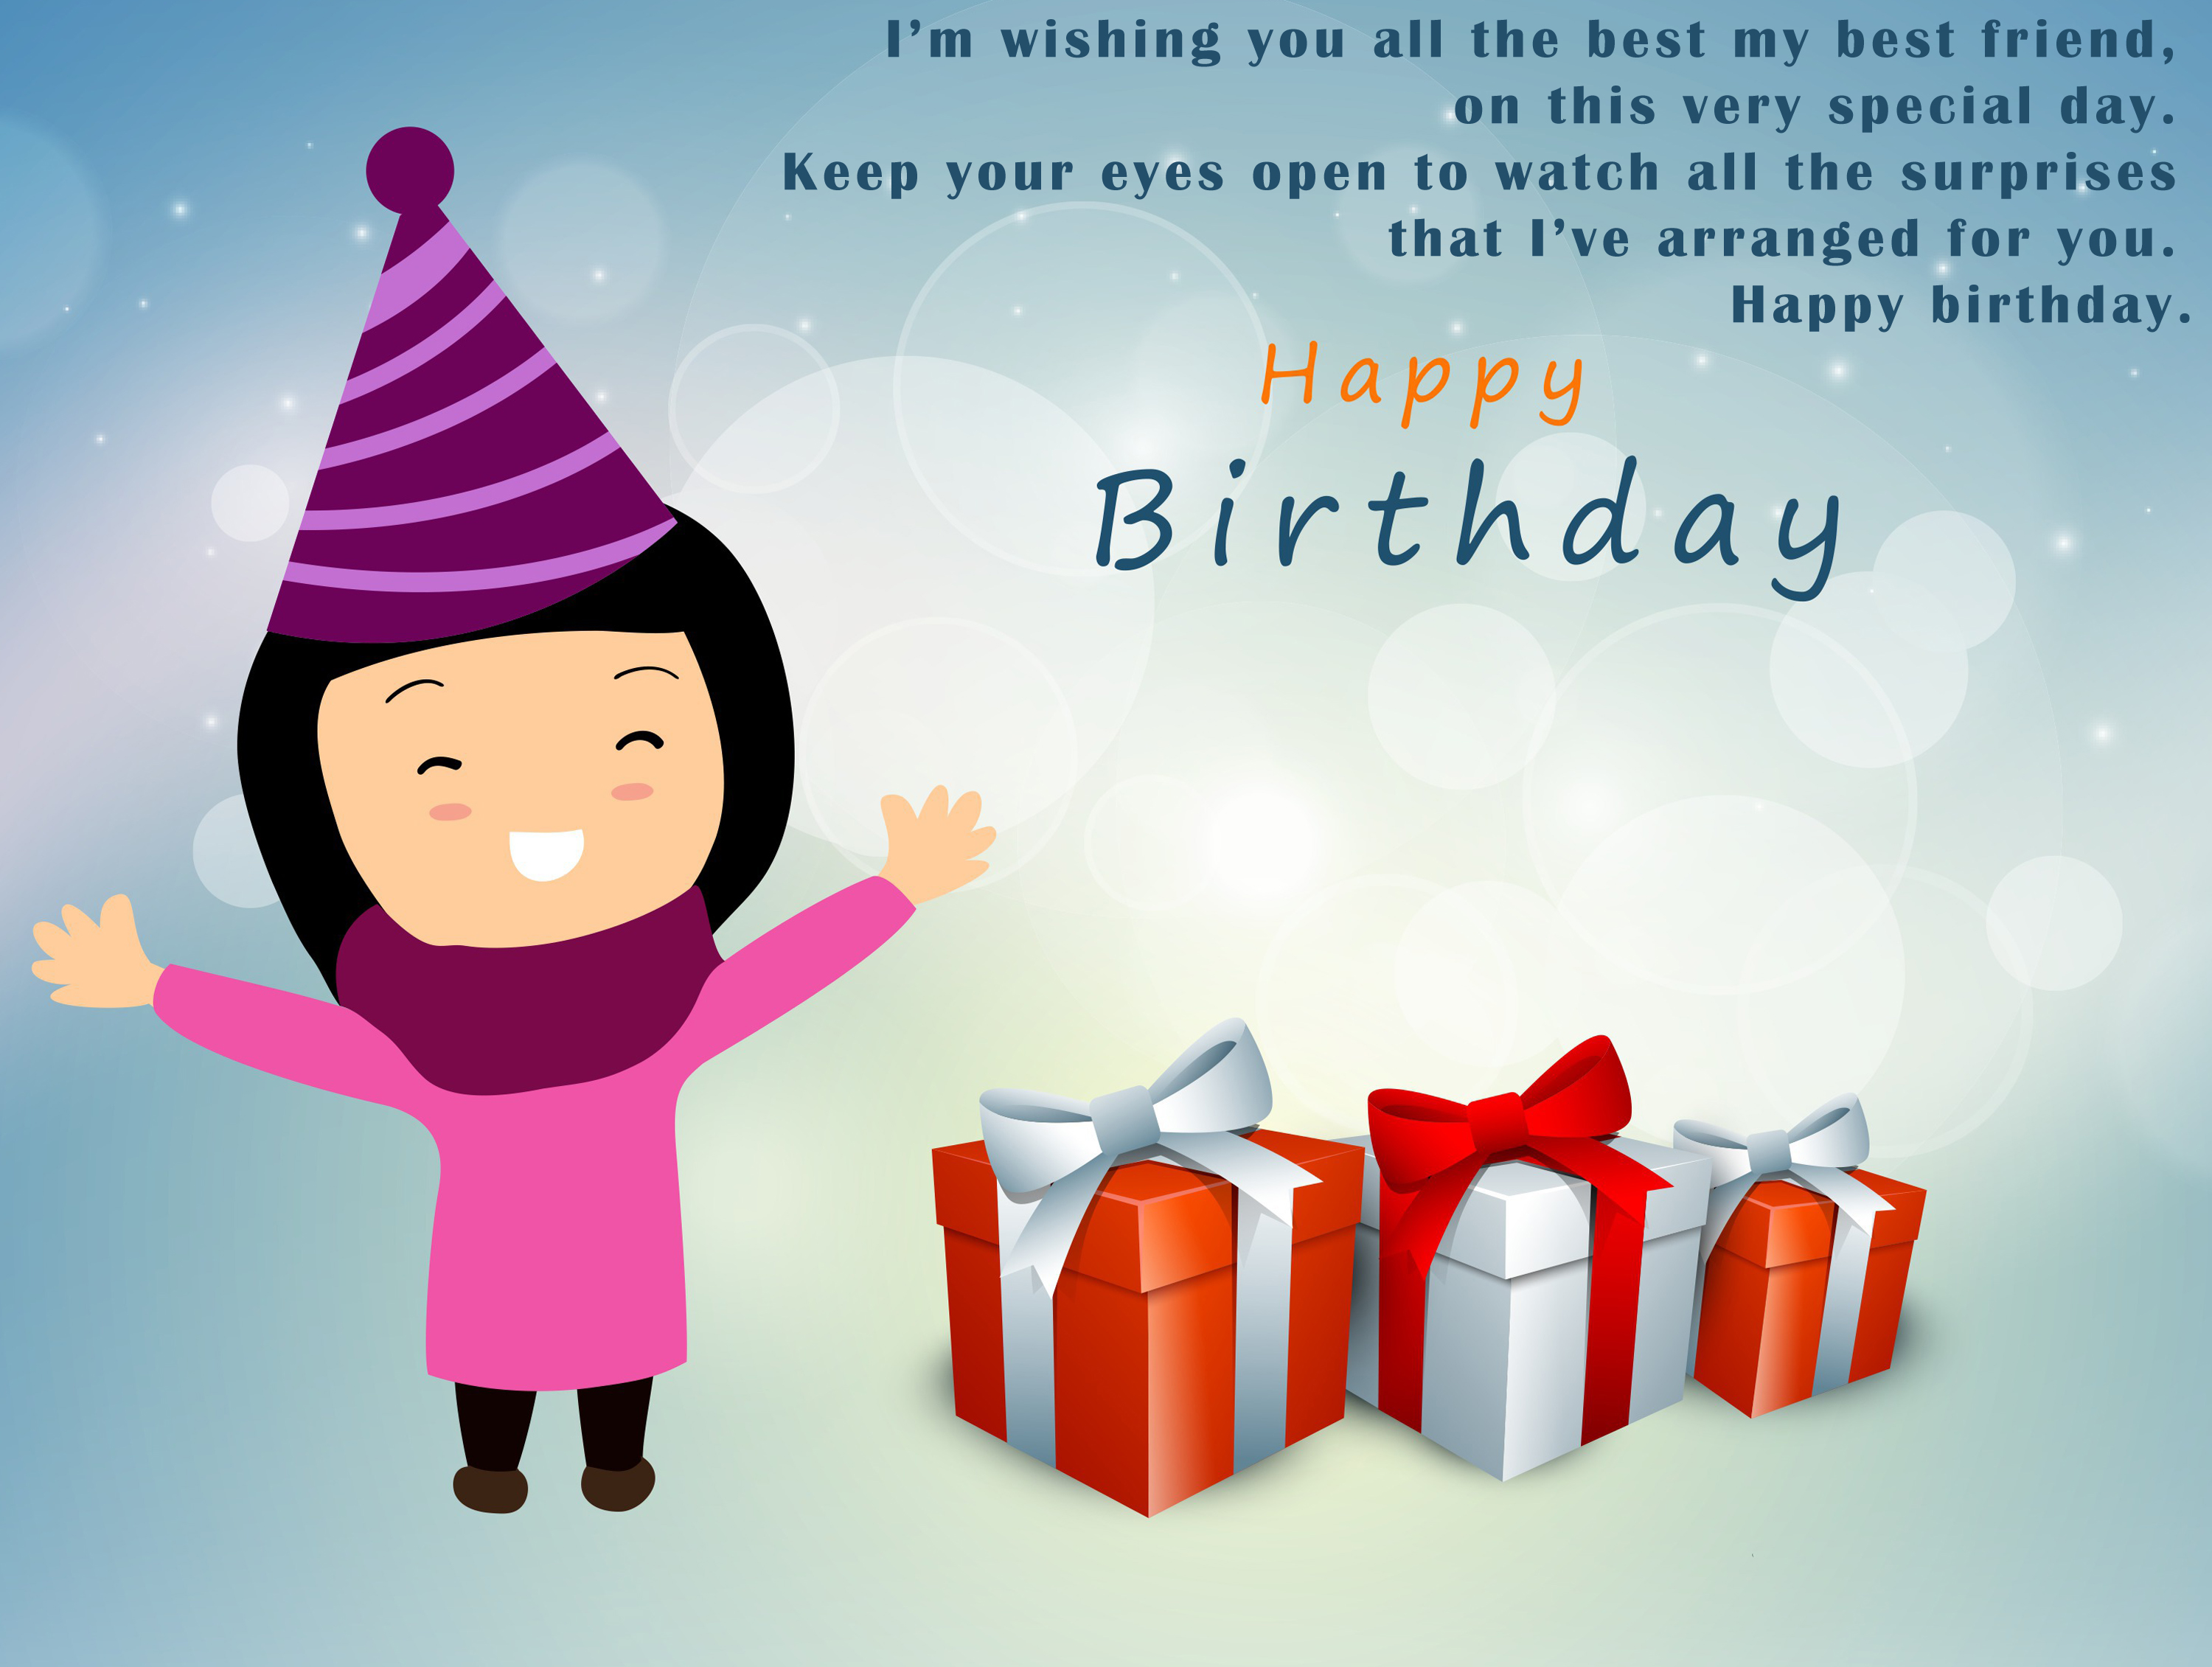 Happy Birthday Wishes Video For Friend With Name